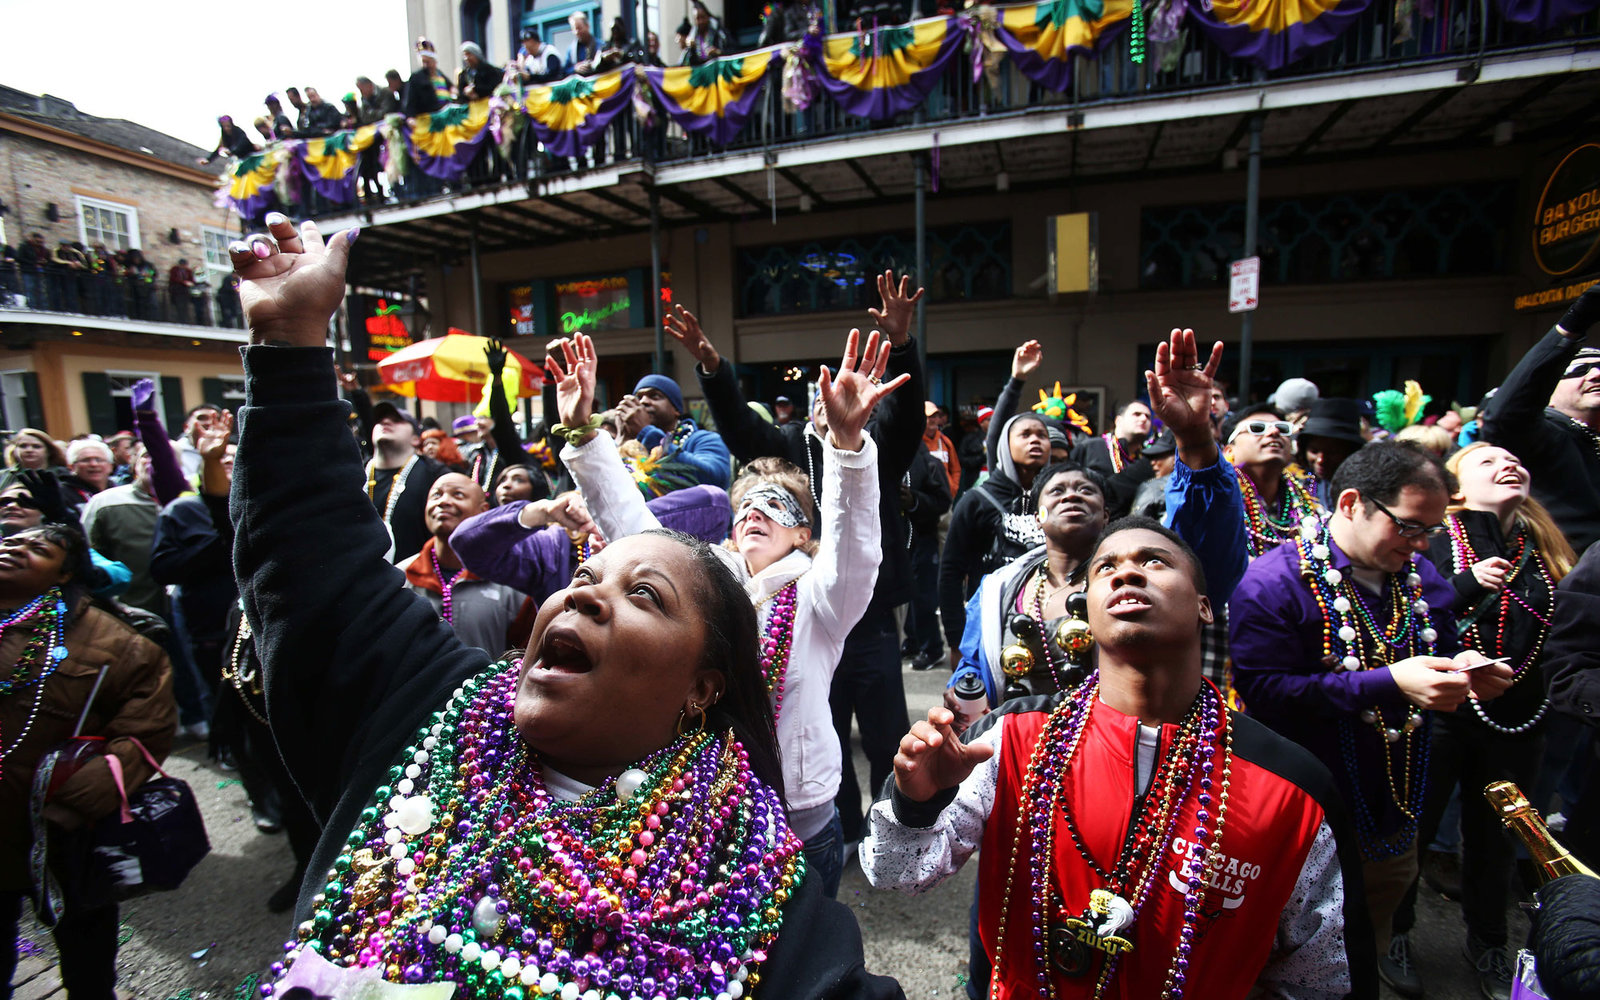 How To Enjoy Mardi Gras And Not Make A Fool Of Yourself